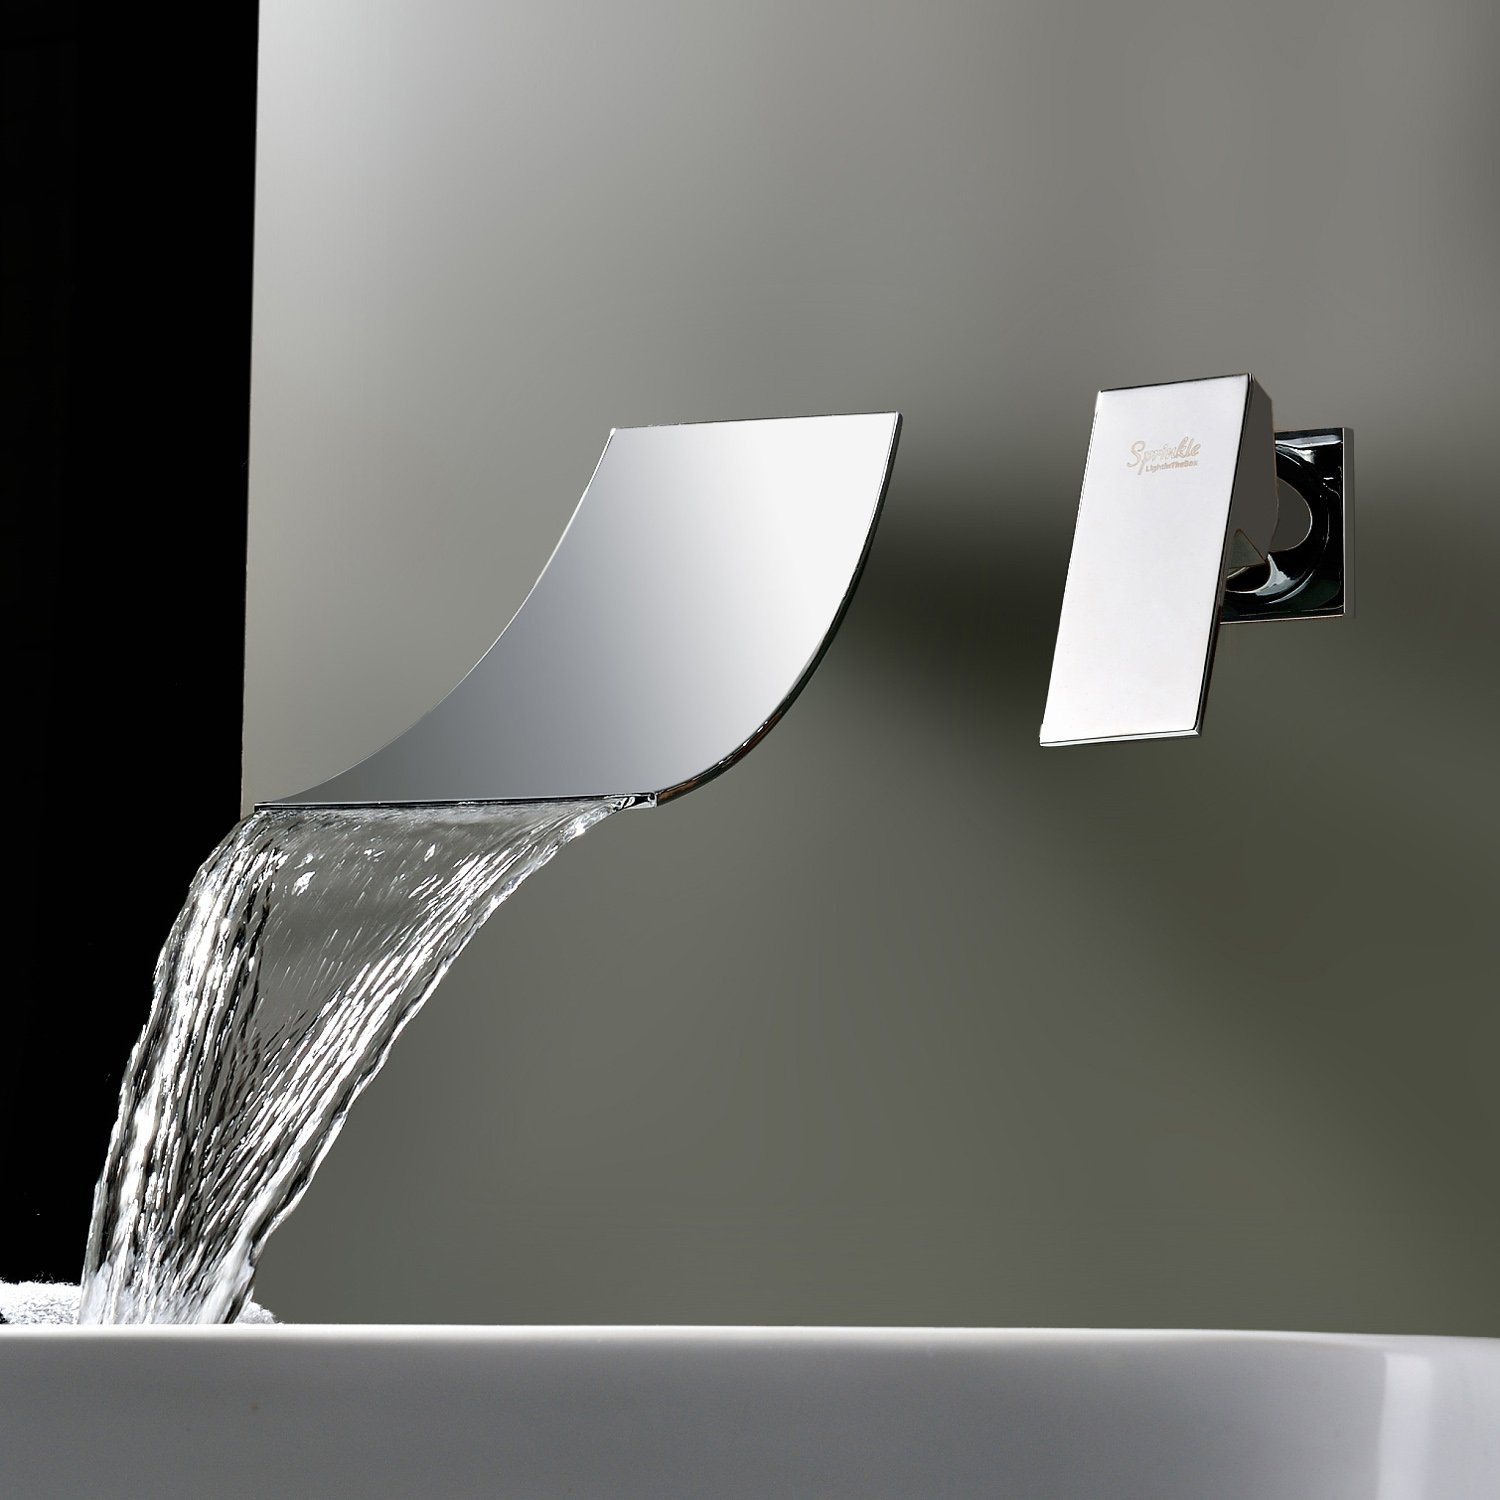 Lightinthebox Widespread Waterfall Bathtub Mixer Taps Bath Shower